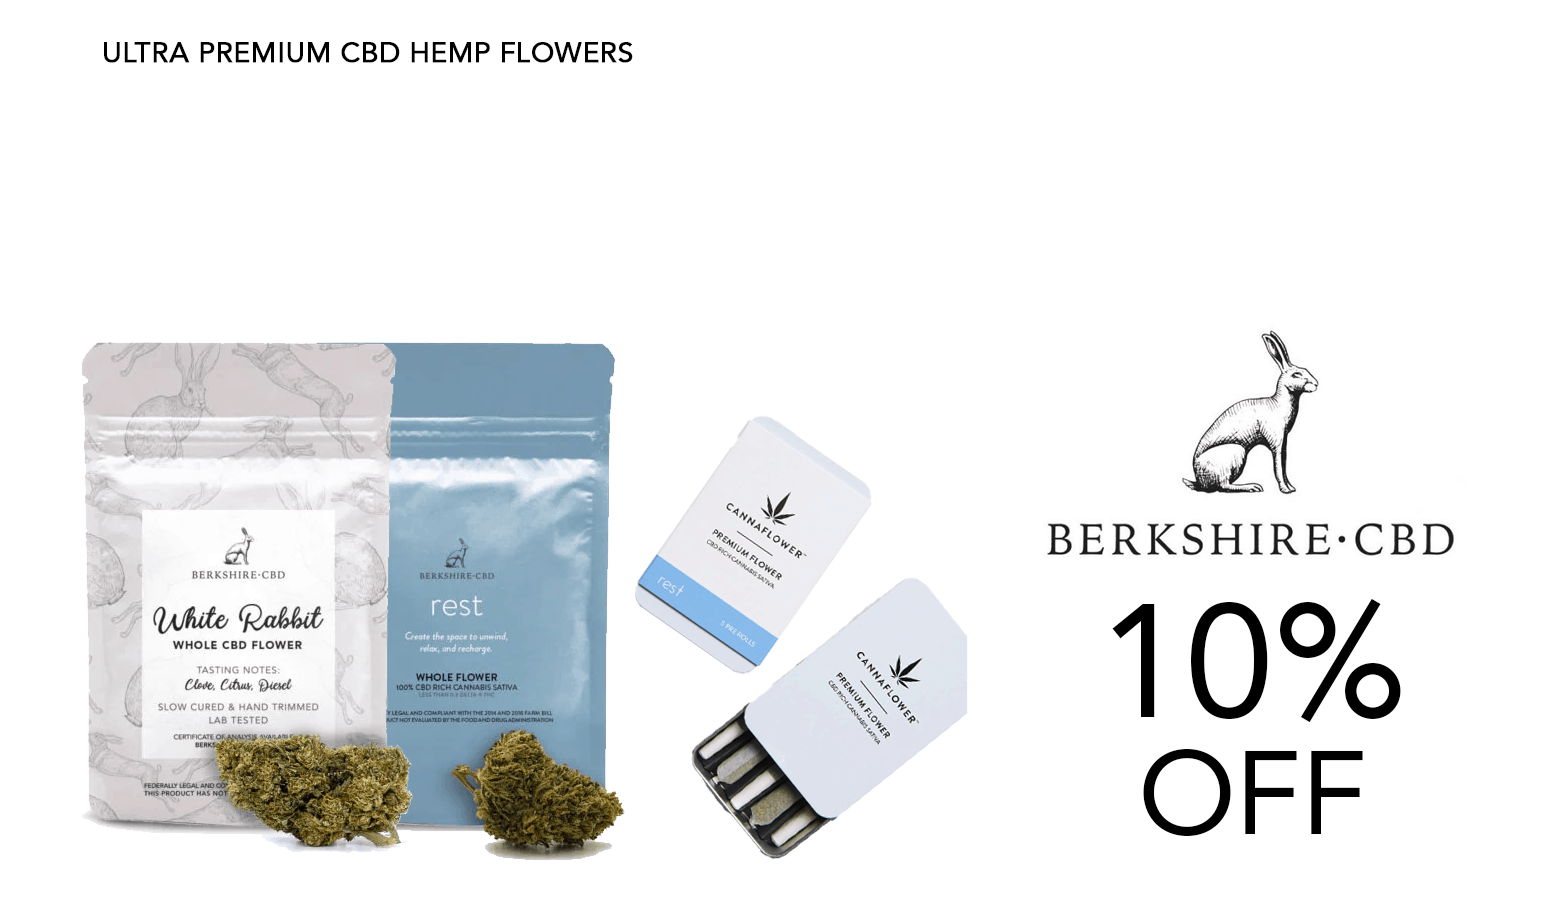 Berkshire CBD Coupon Code Offer Website